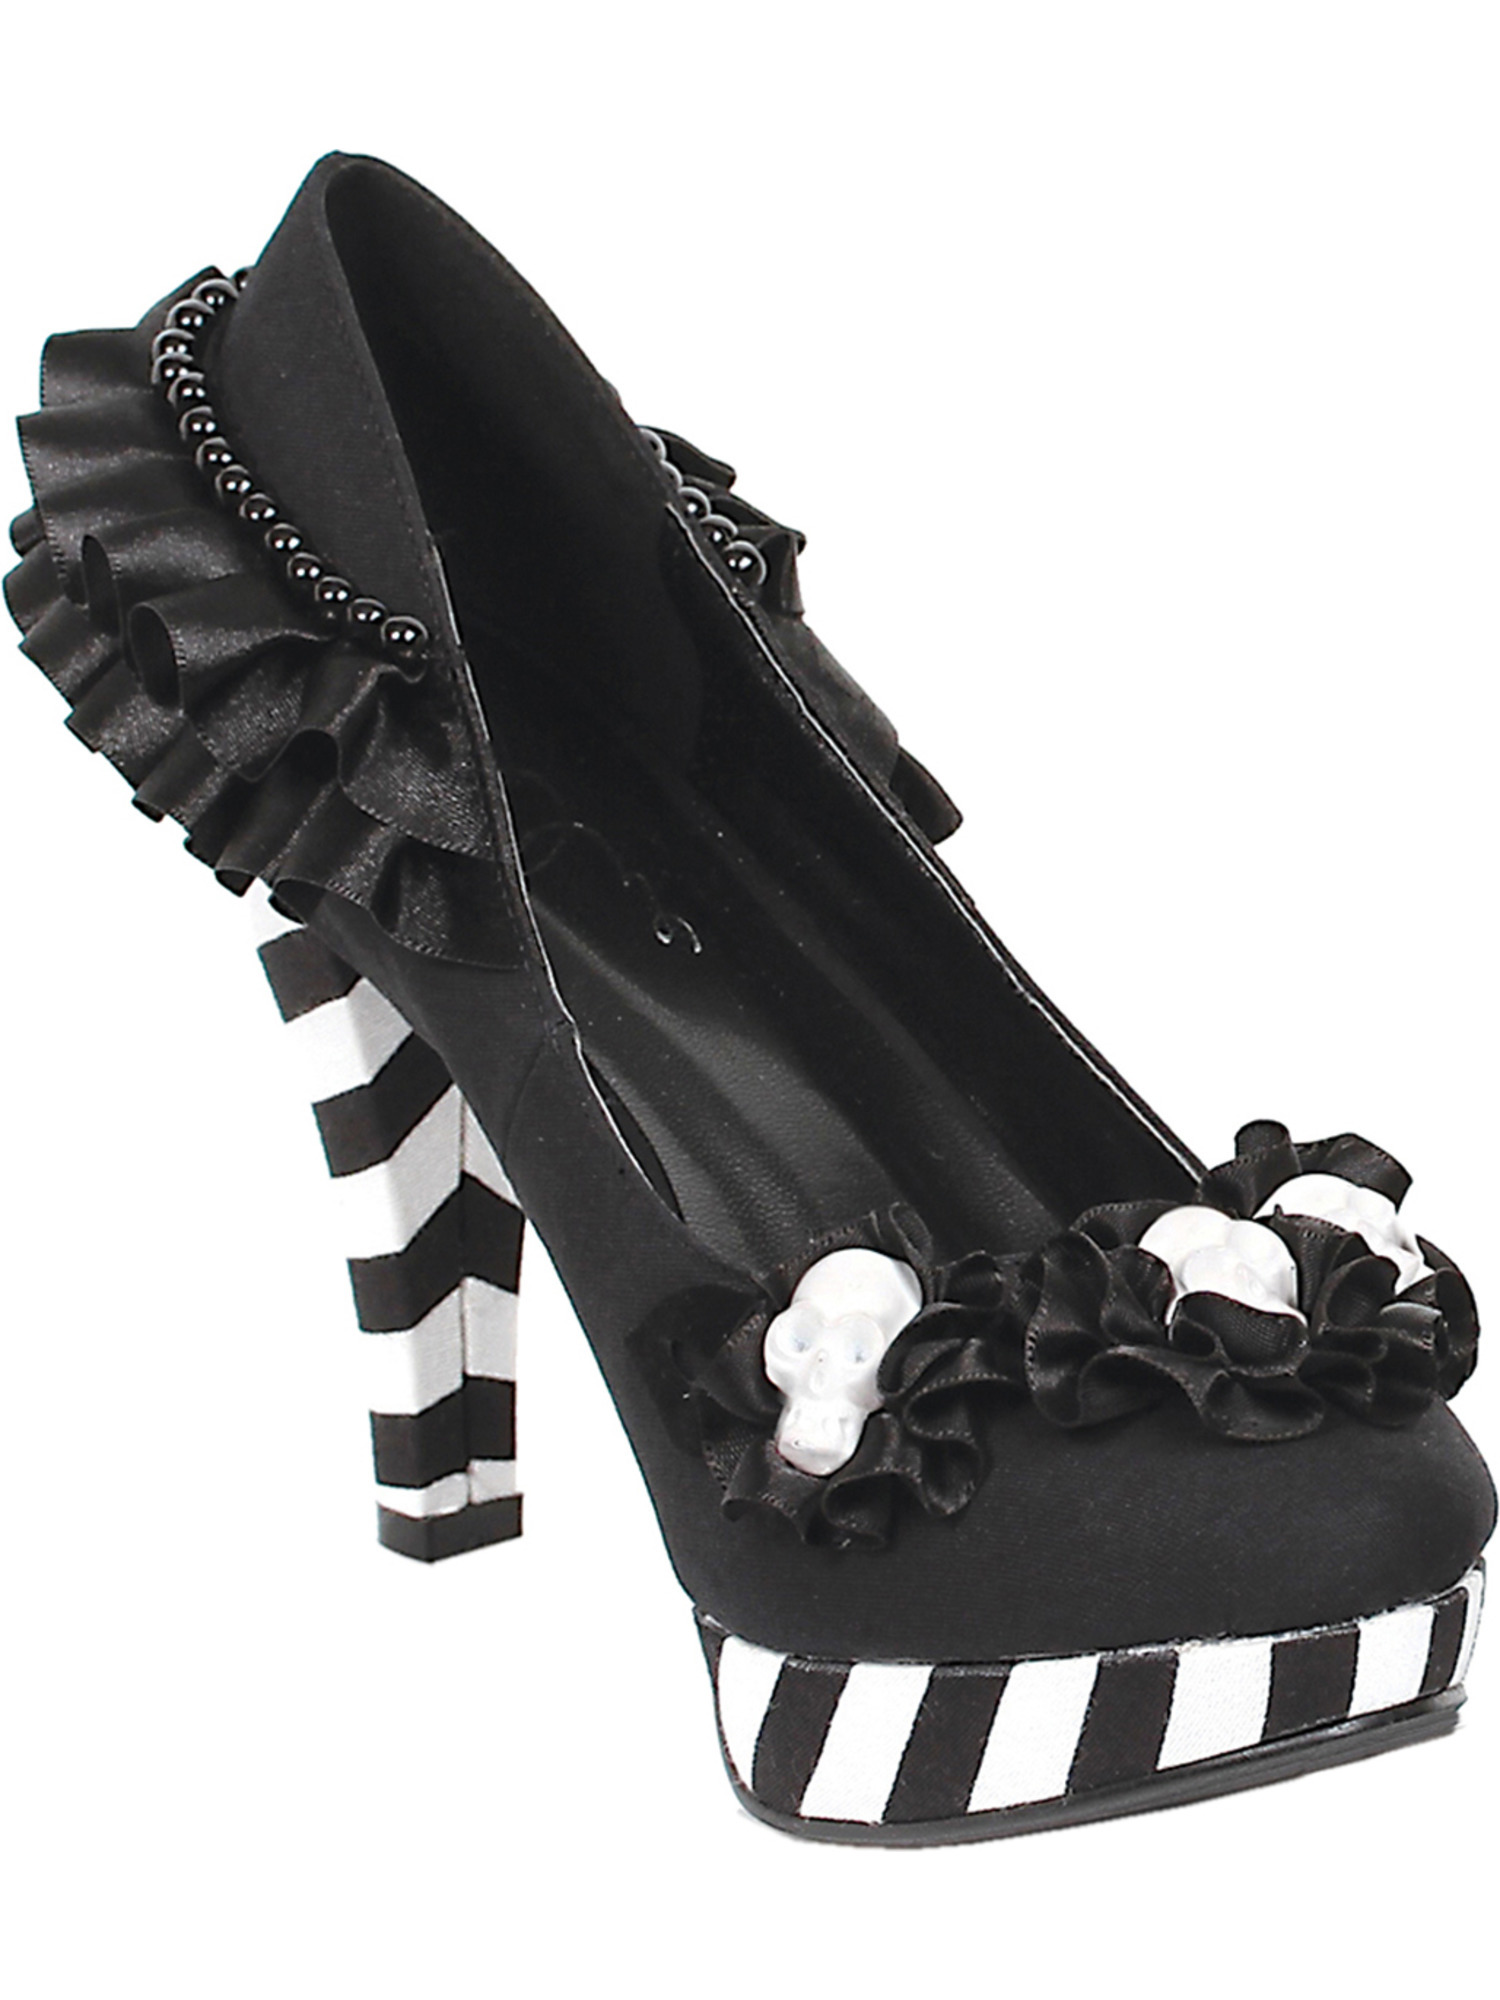 Womens Black and Ruffle White Shoes Platform Pumps Ruffle and Flowers Skulls 4 Inch Heels 181209